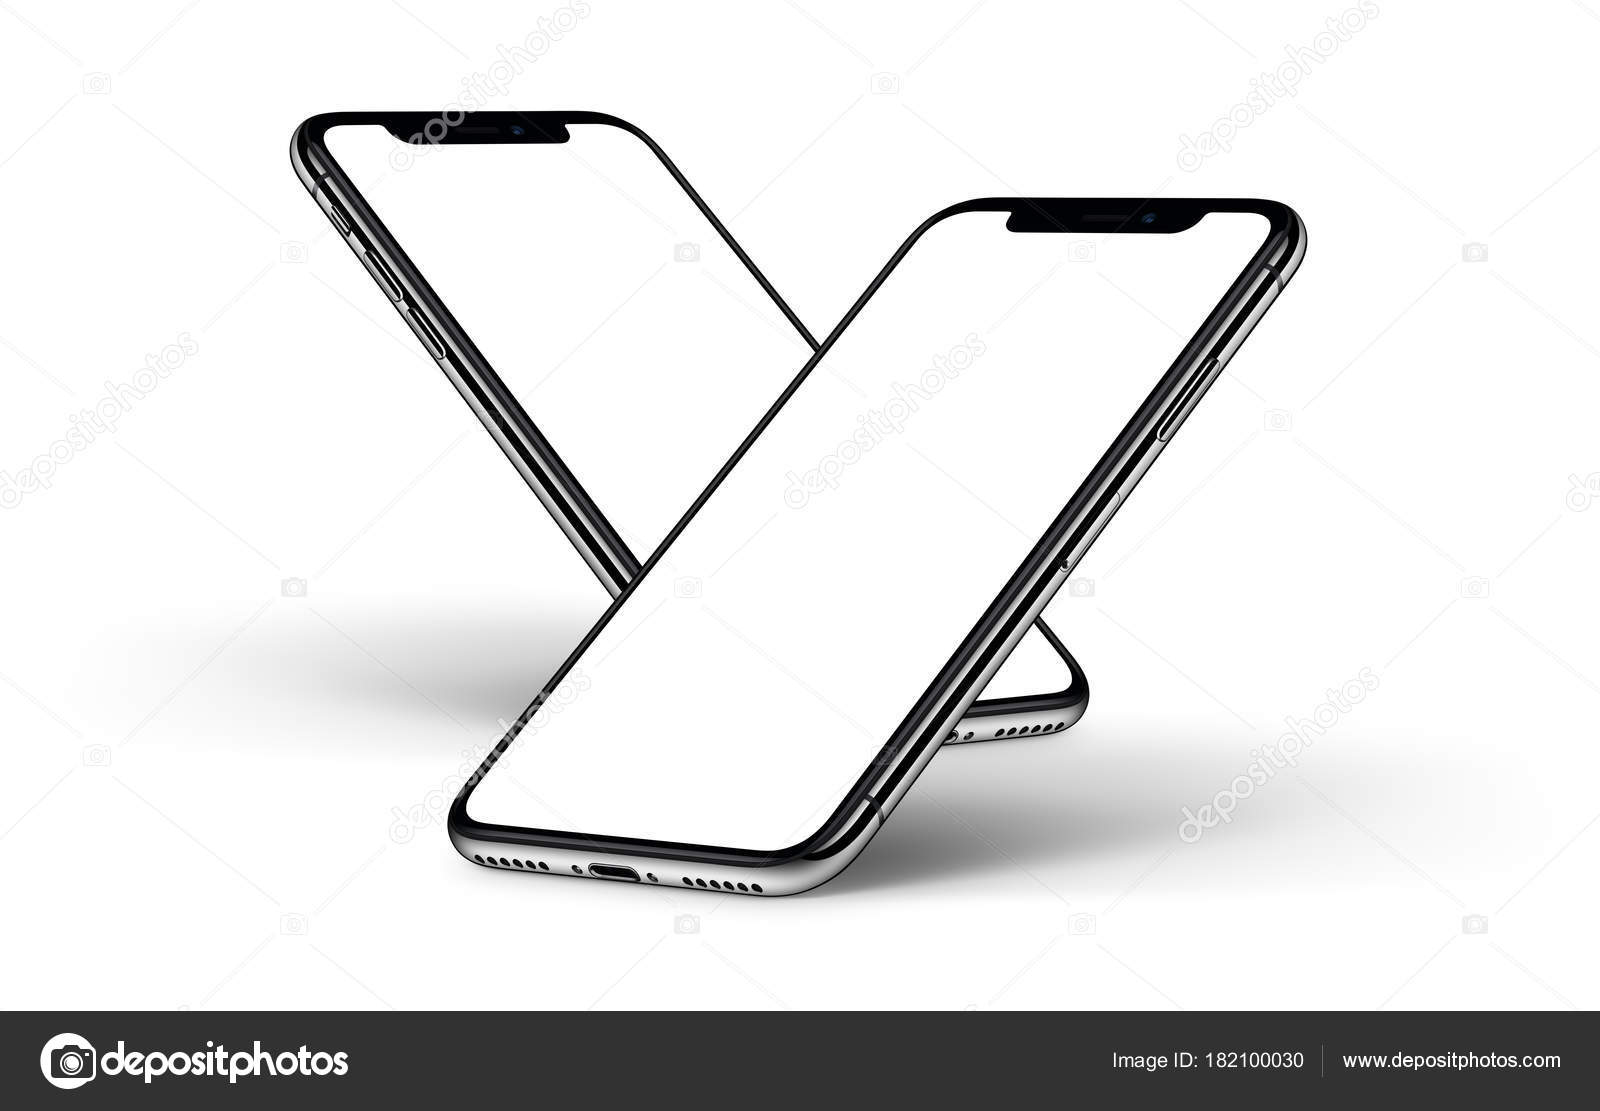 Iphone X Smartphones Mockup One Behind The Other Front Side With White Screen Stock Photo C Alexey Boldin 182100030